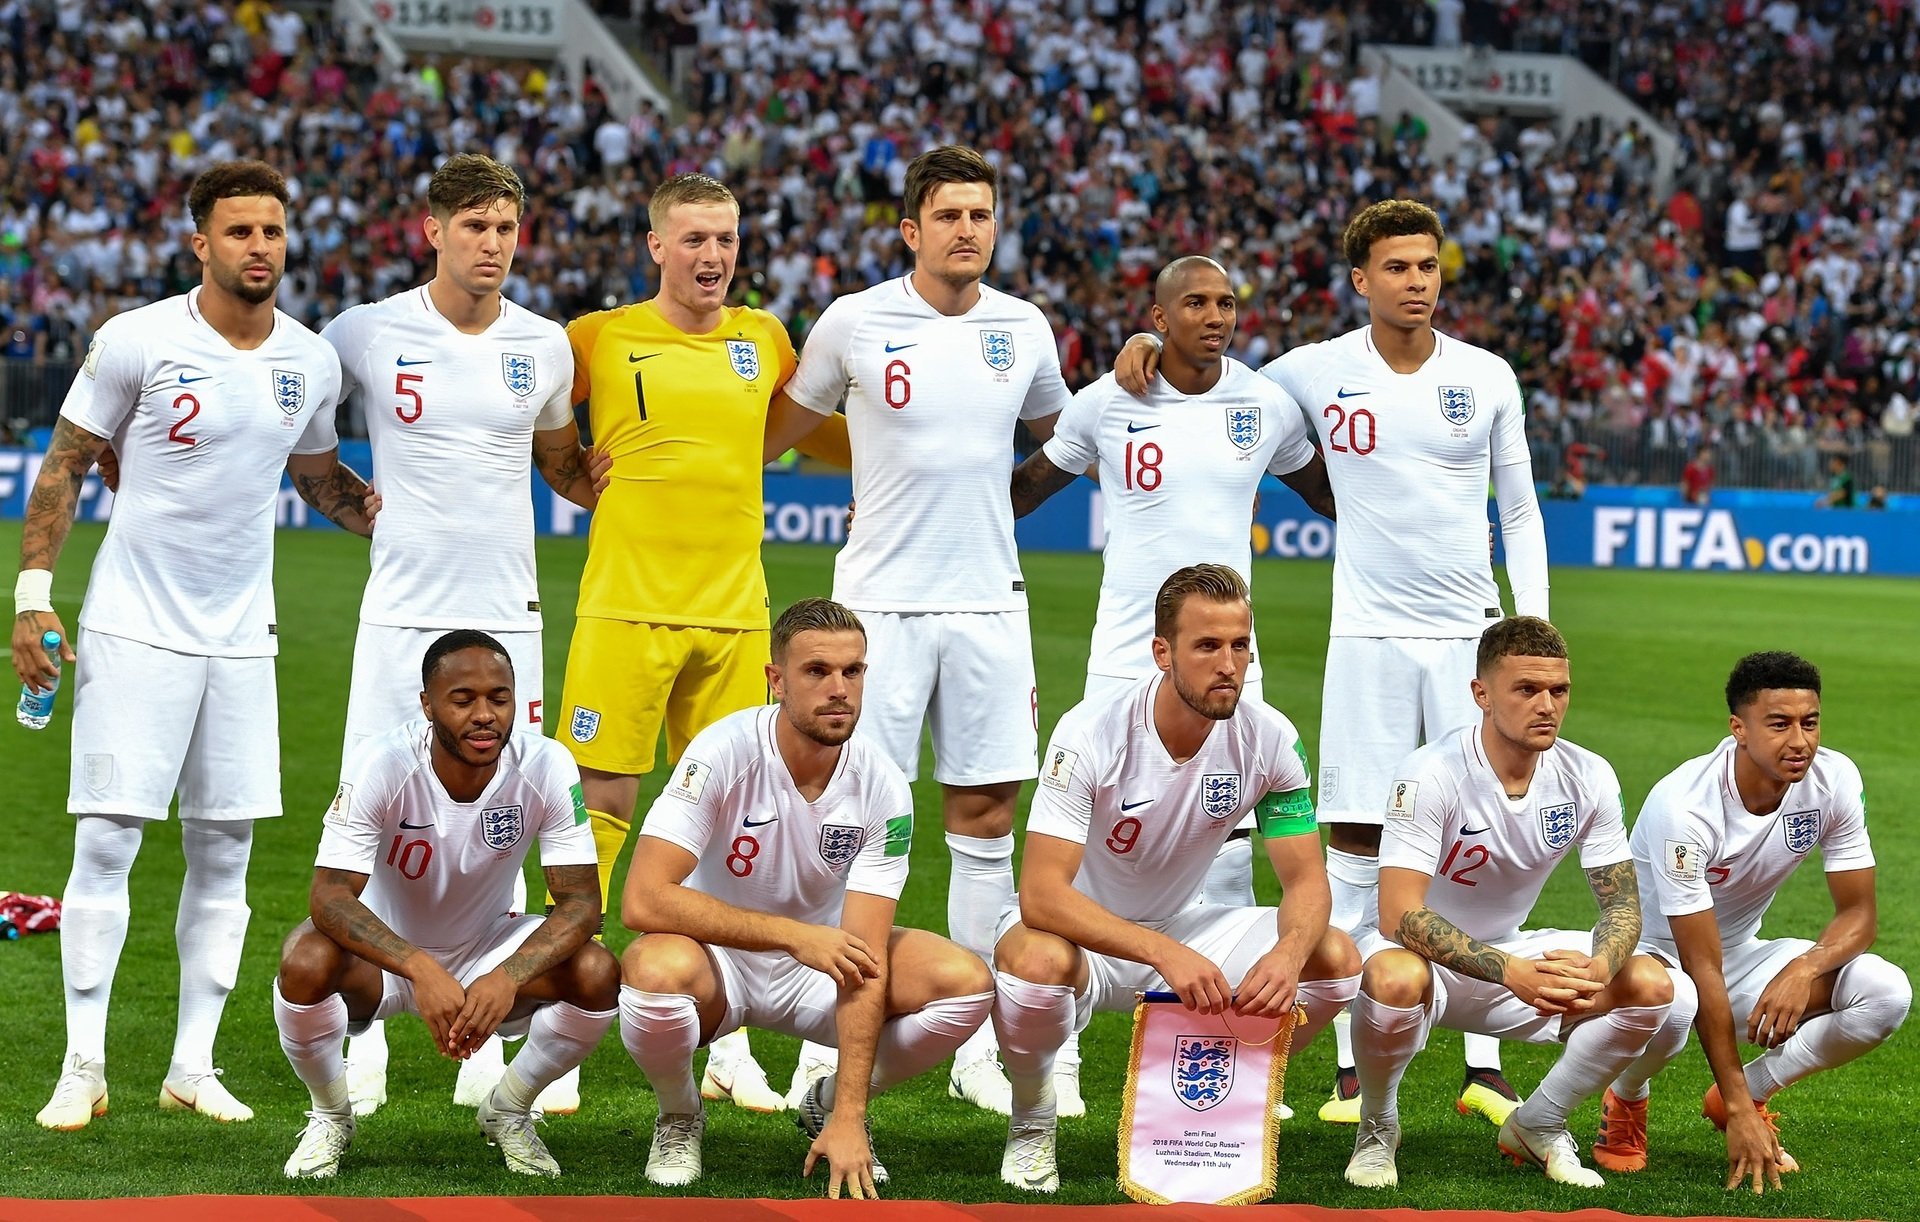 England-2018-NIKE-world-cup-home-kit-white-white-white-line-up.jpg